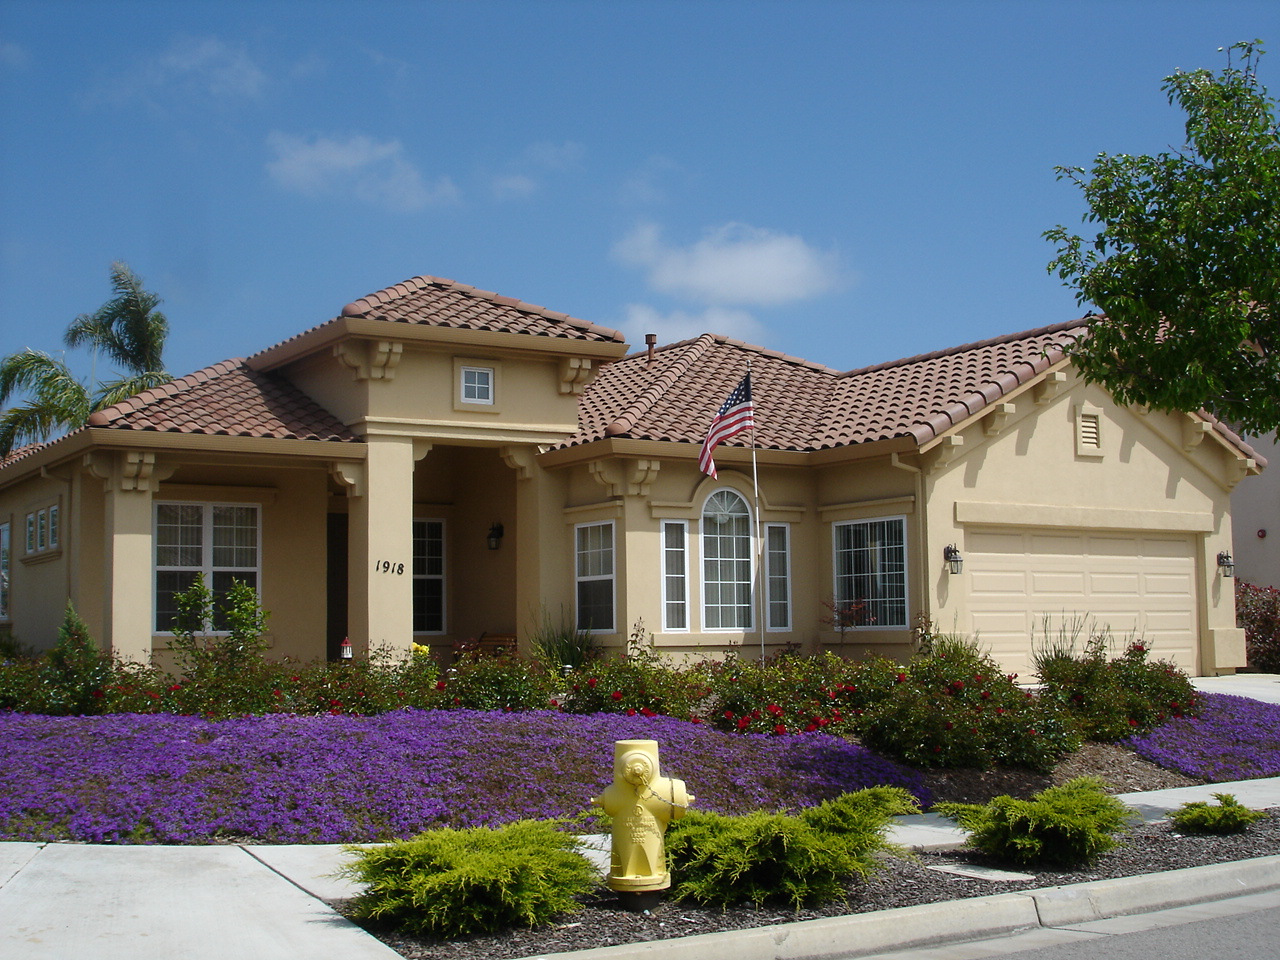 File ranch style home in salinas california jpg wikipedia for Big ranch house